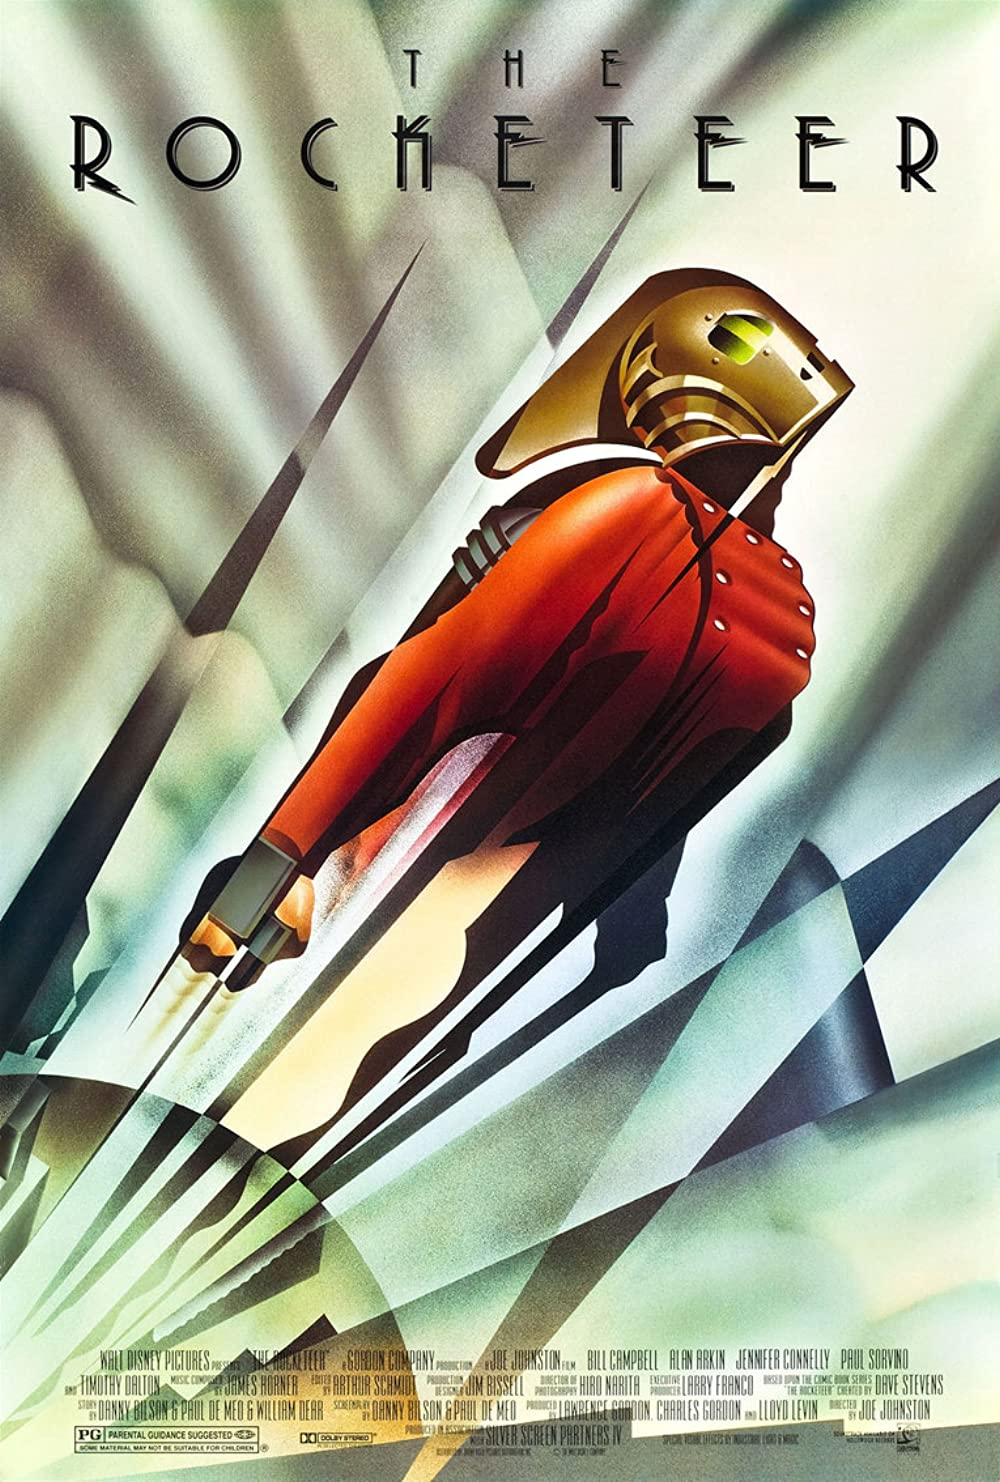 Rocketeer: Directed by Joe Johnston. With Billy Campbell, Jennifer Connelly, Alan Arkin, Timothy Dalton. A young pilot stumbles onto a prototype jetpack that allows him to become a high-flying masked hero.